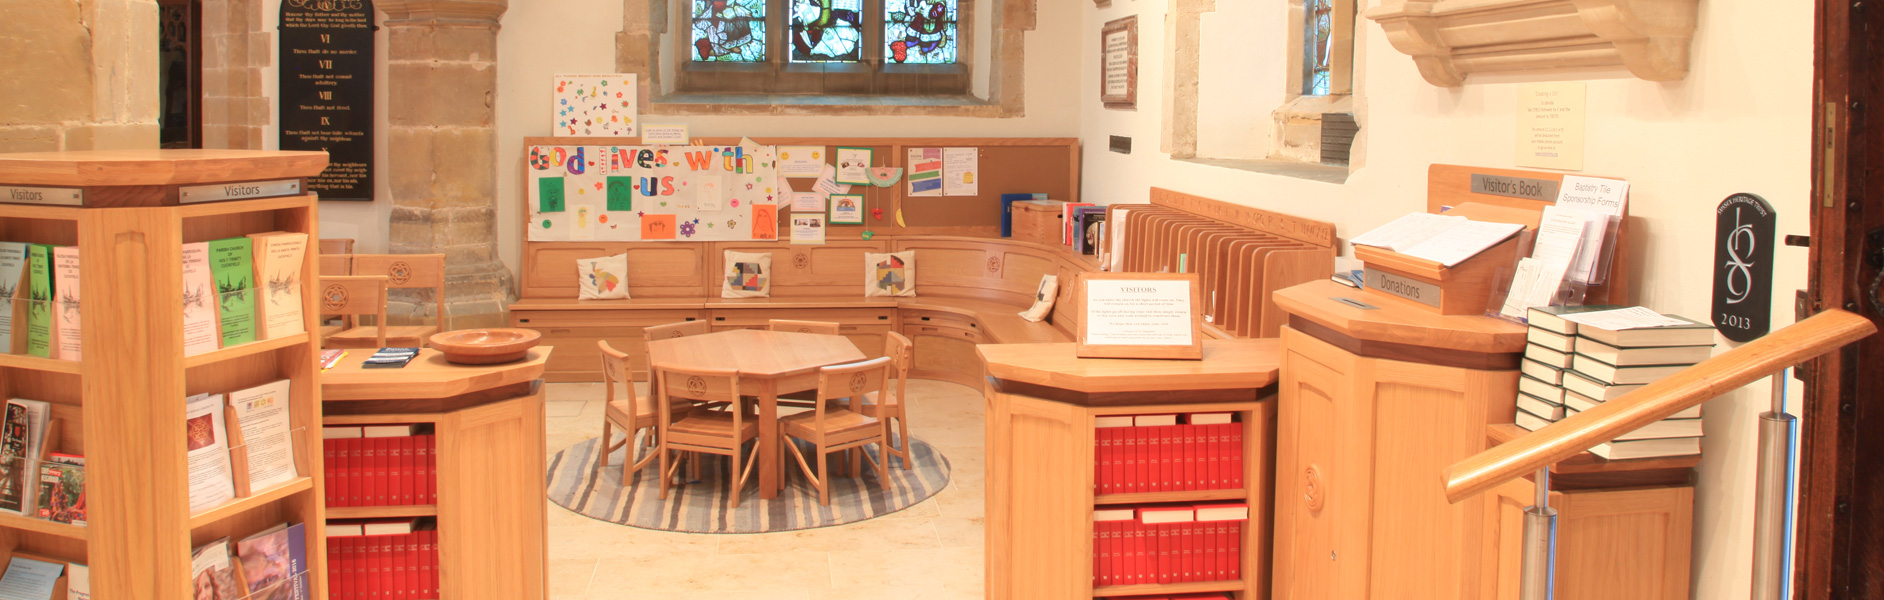 ICS designed a children's area in the Holy Trinity Church, Cuckfield